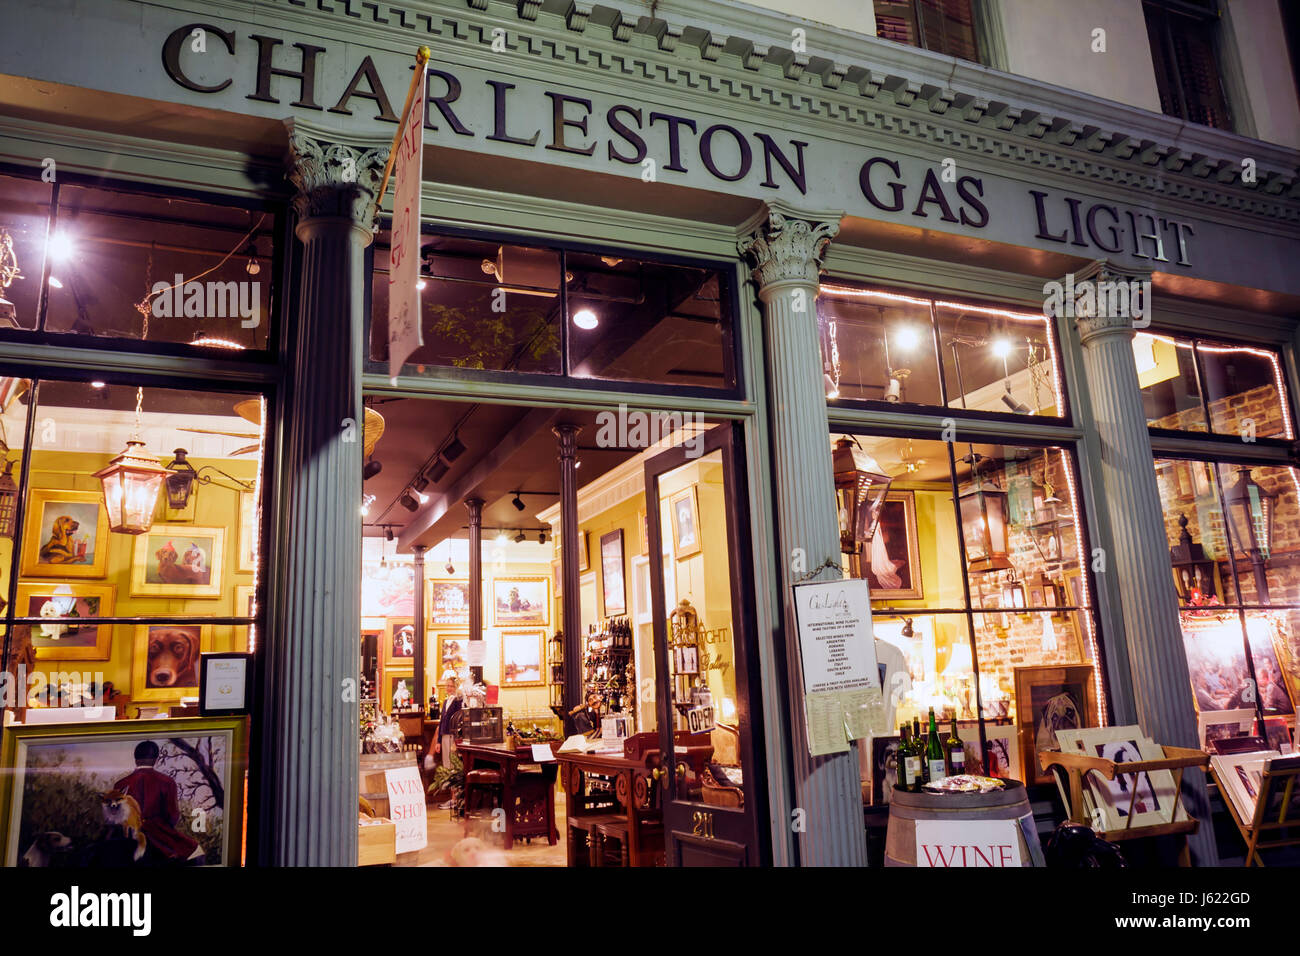 Charleston South Carolina Historic District Meeting Street Gas Light Art and Wine Gallery store business winery - Stock Image